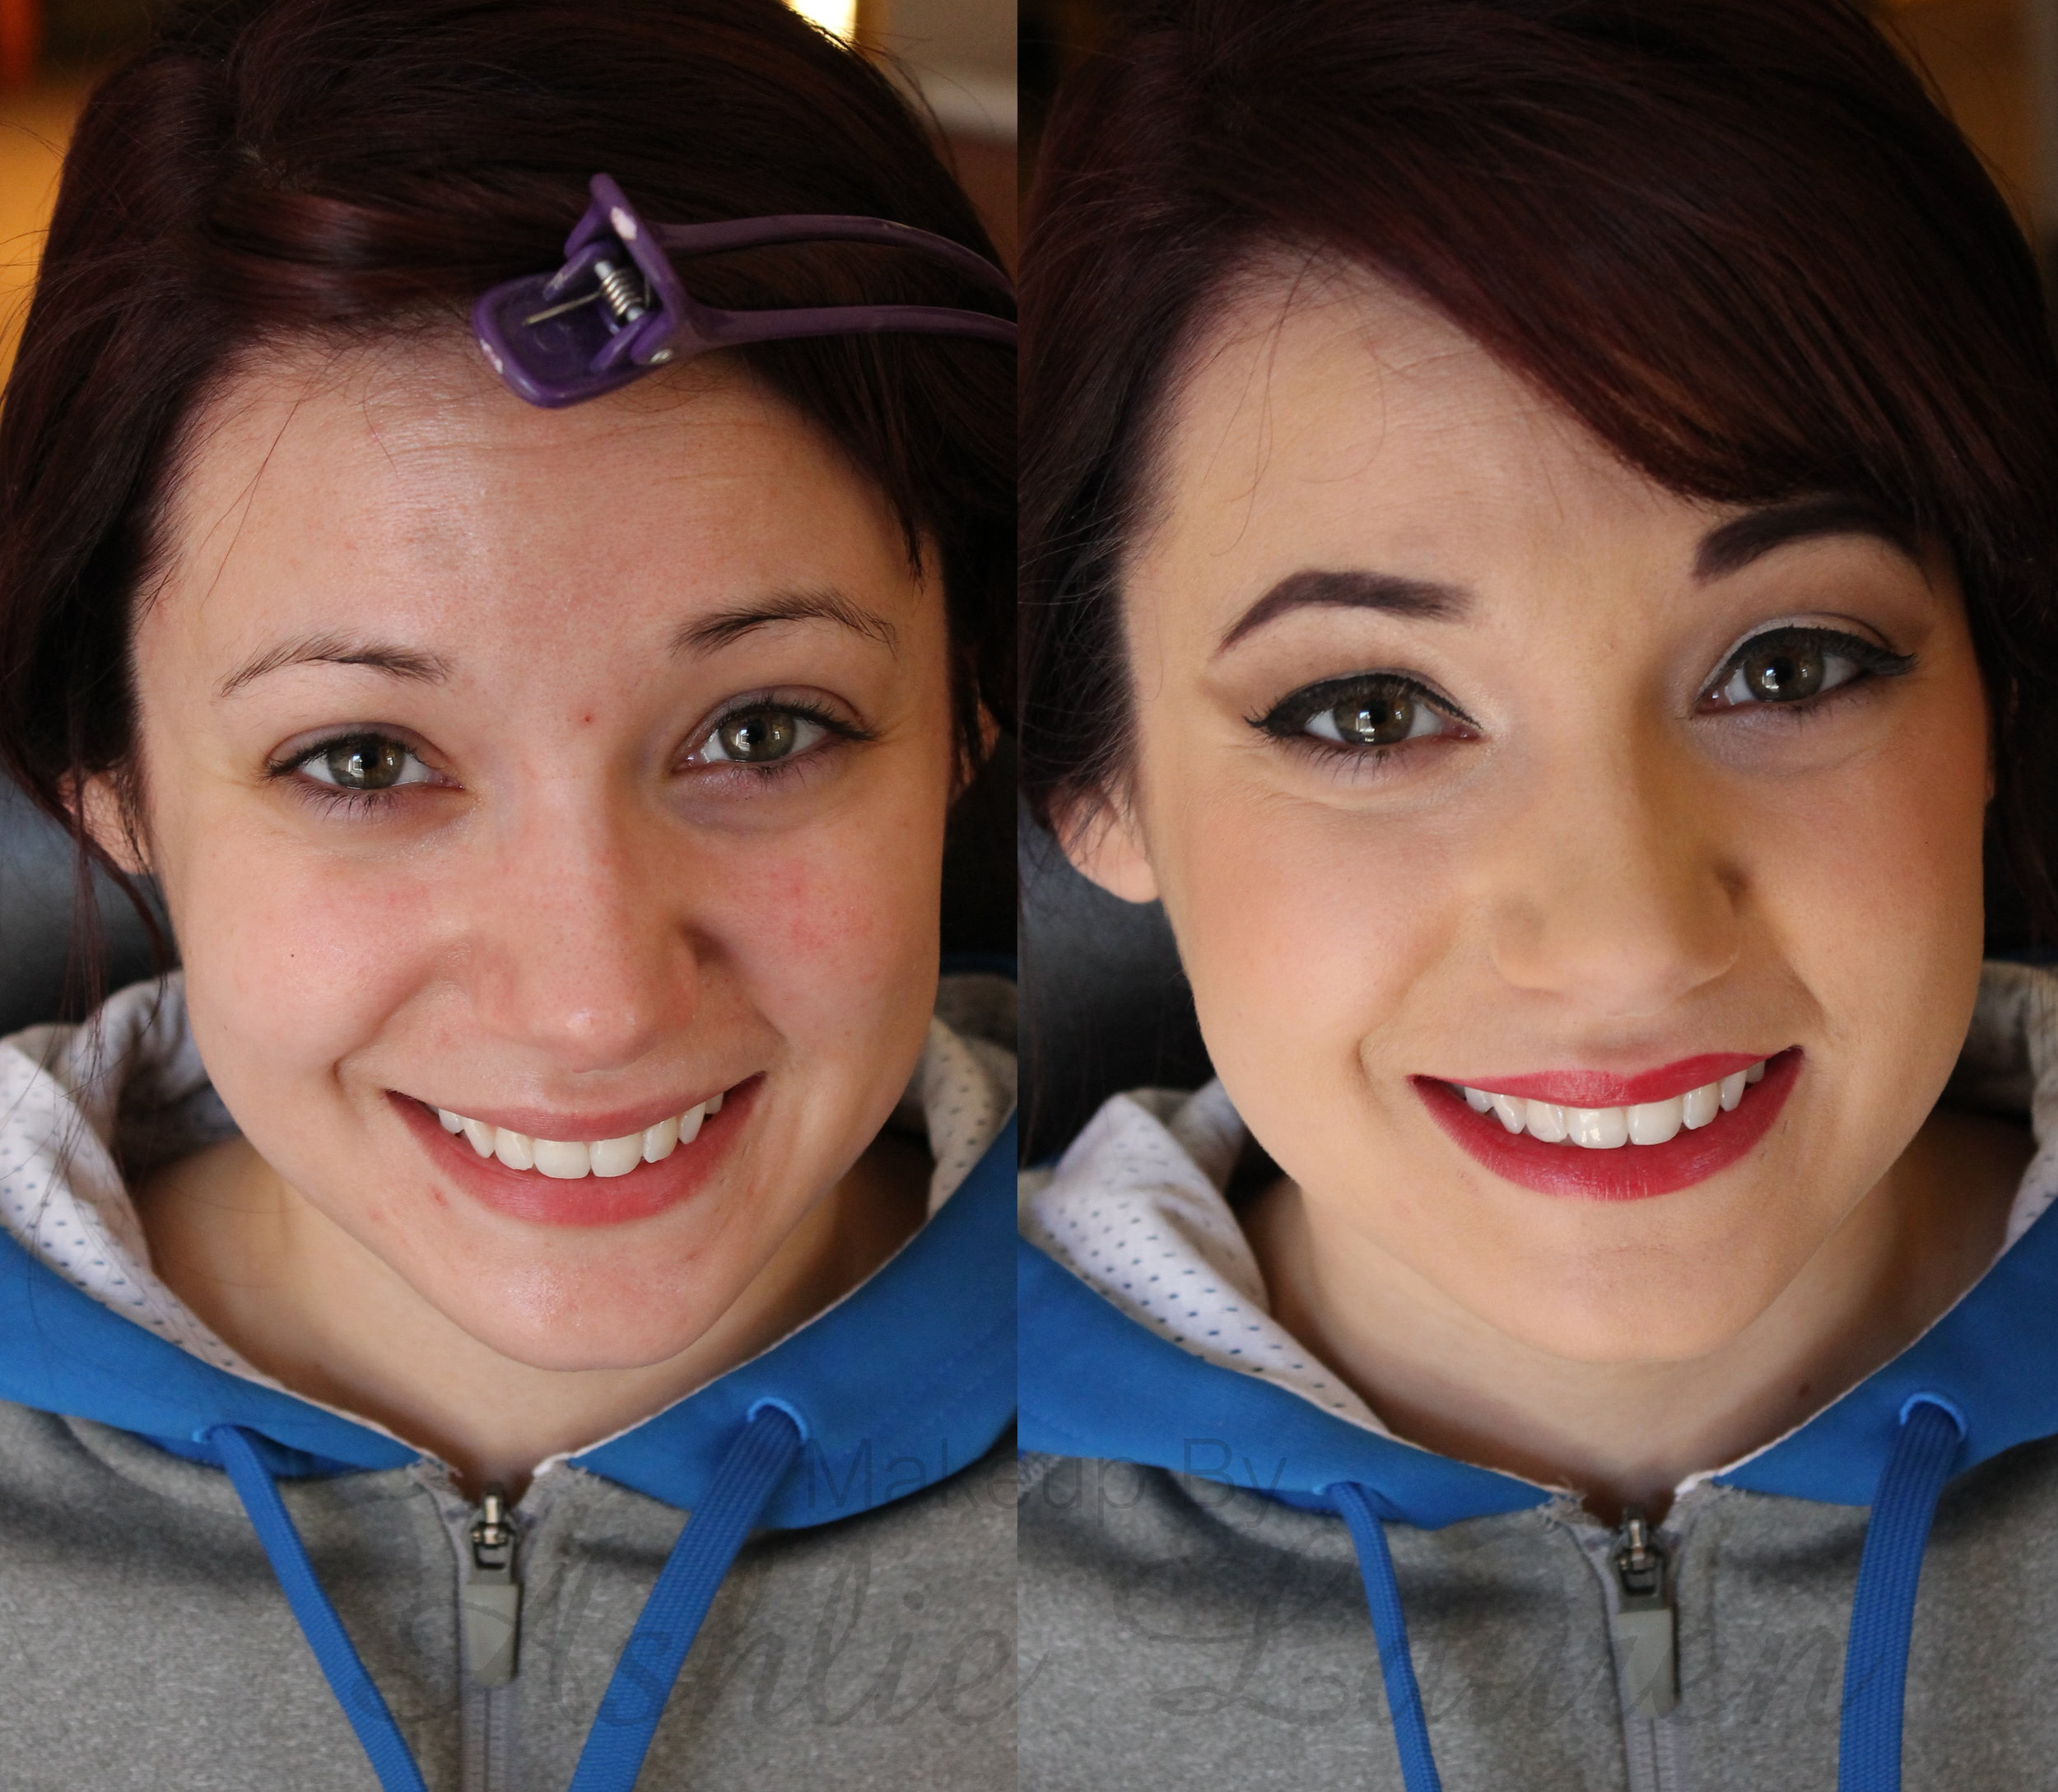 before and after transformation makeup by Ashlie Lauren glamour studio 18.jpg